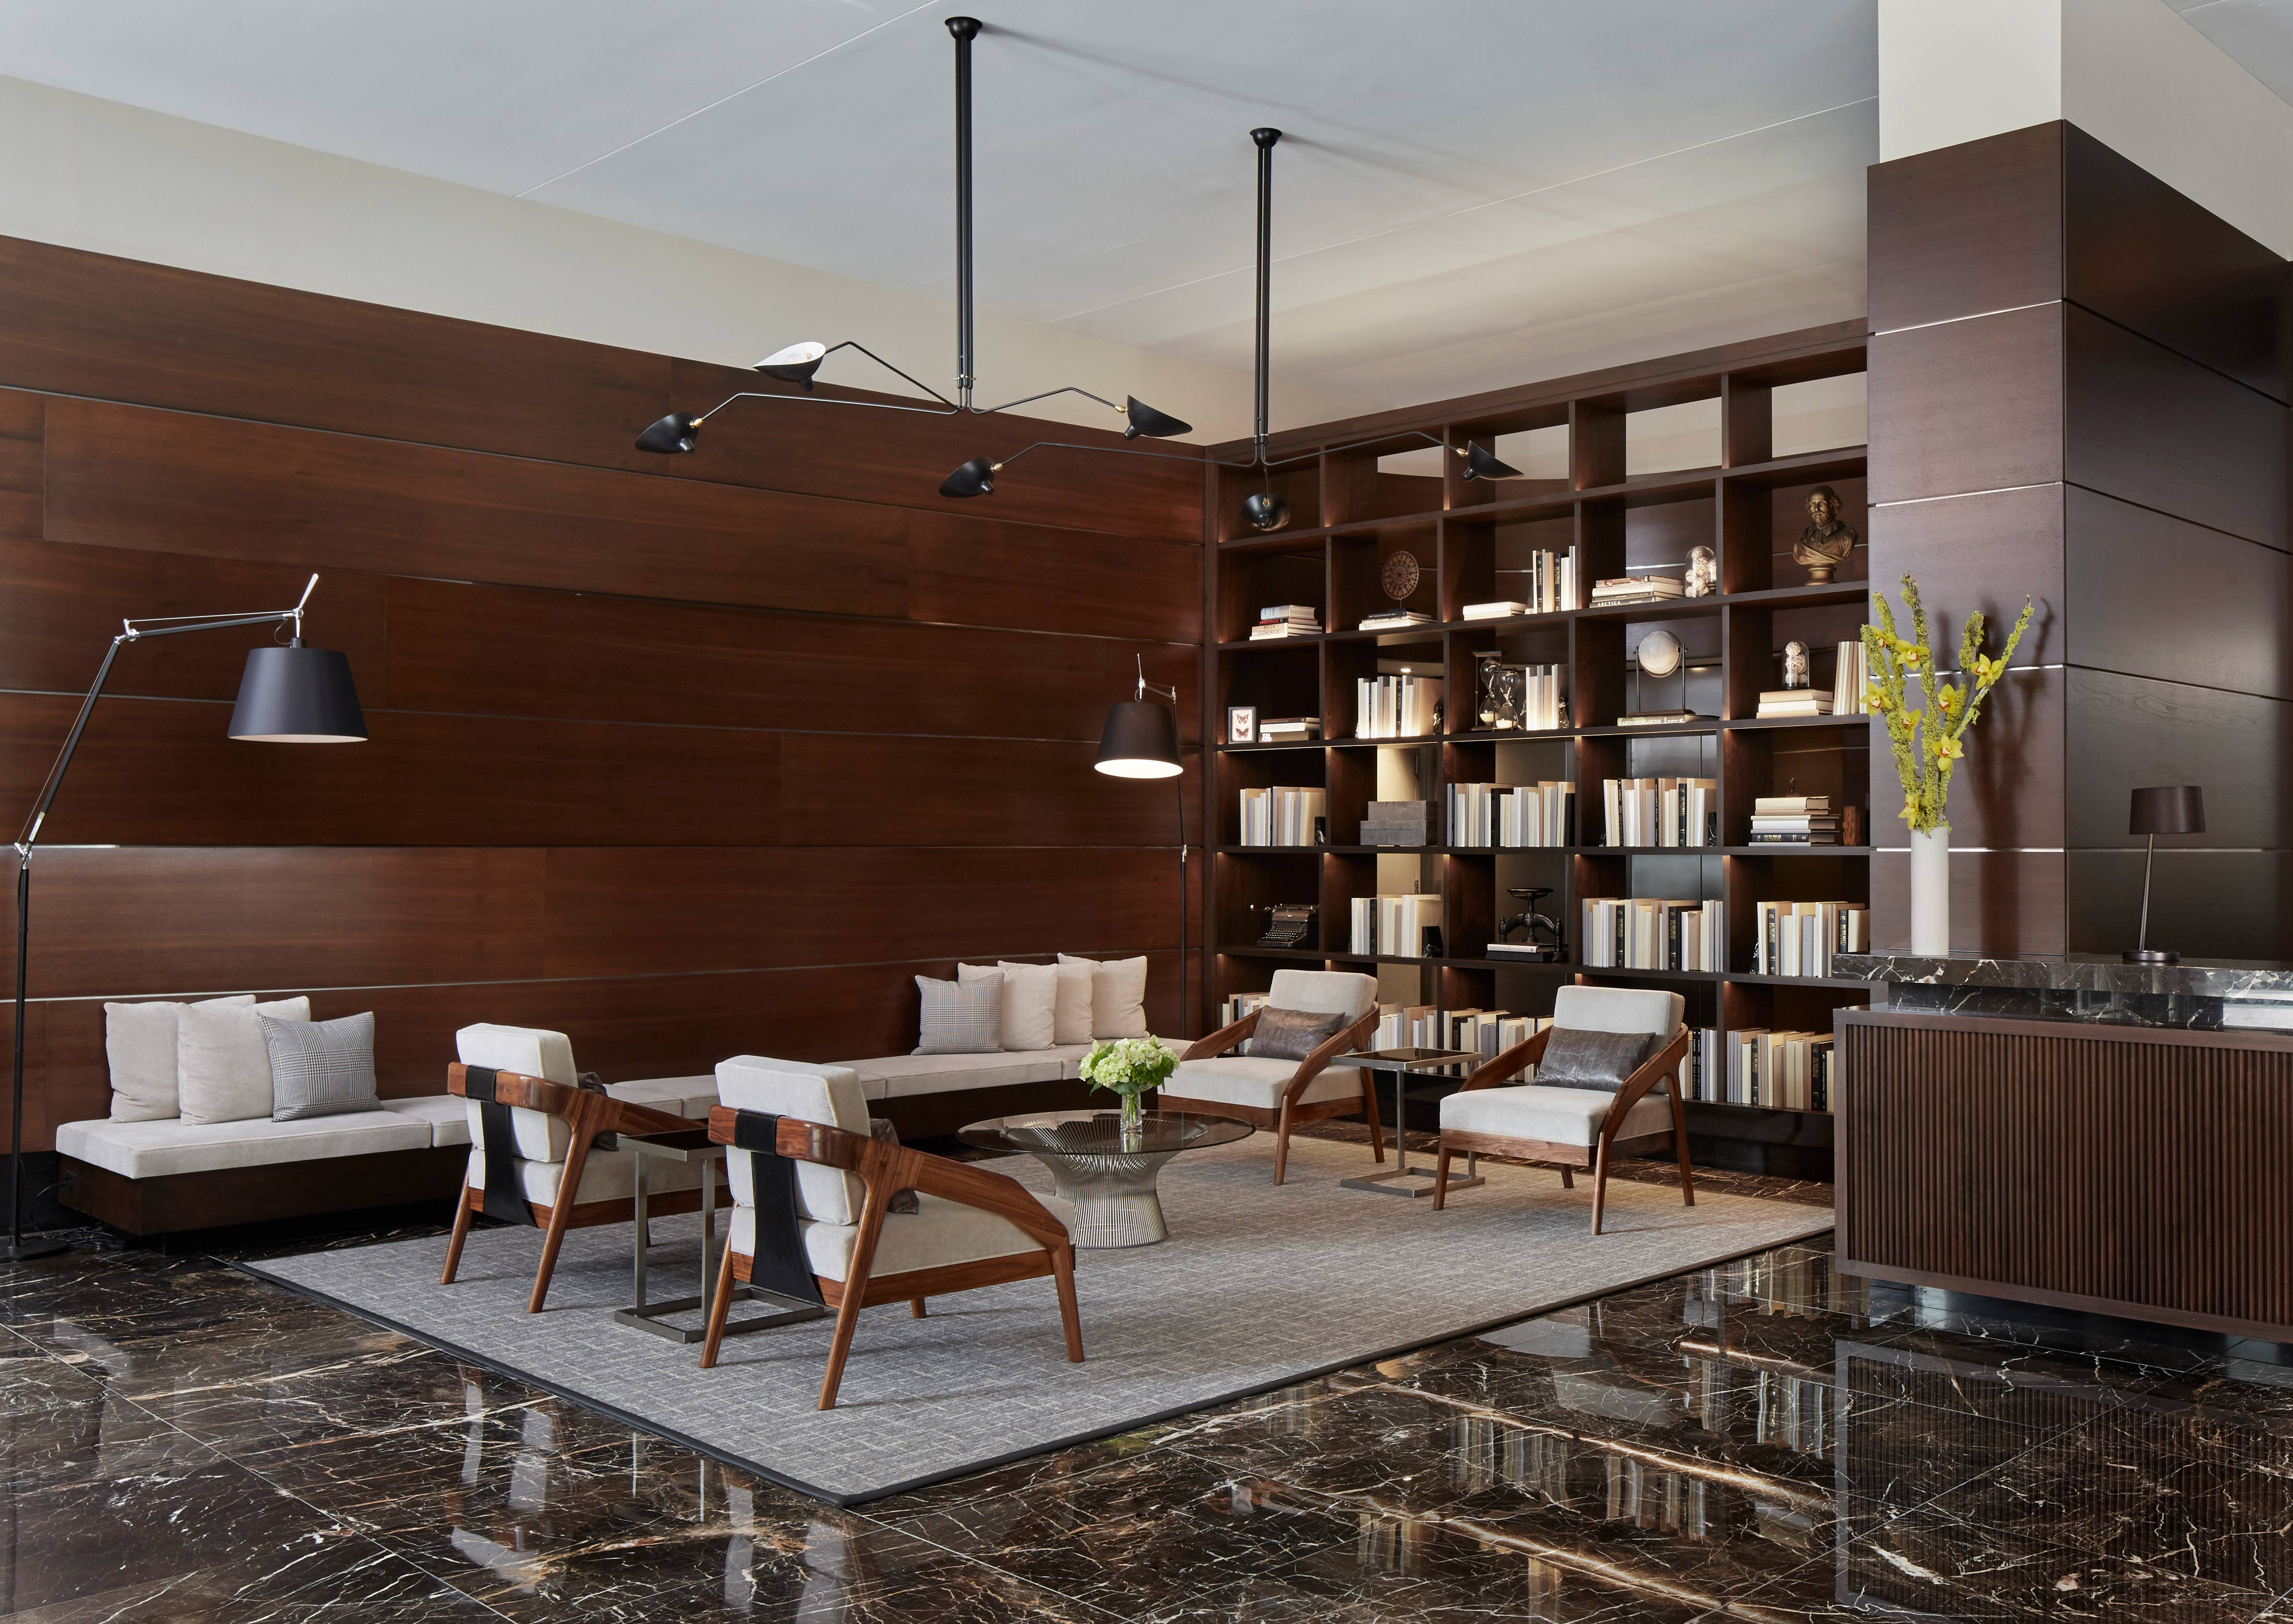 Burnham Pointe's Lobby Transformation in Chicago - Soucie Horner, Ltd.